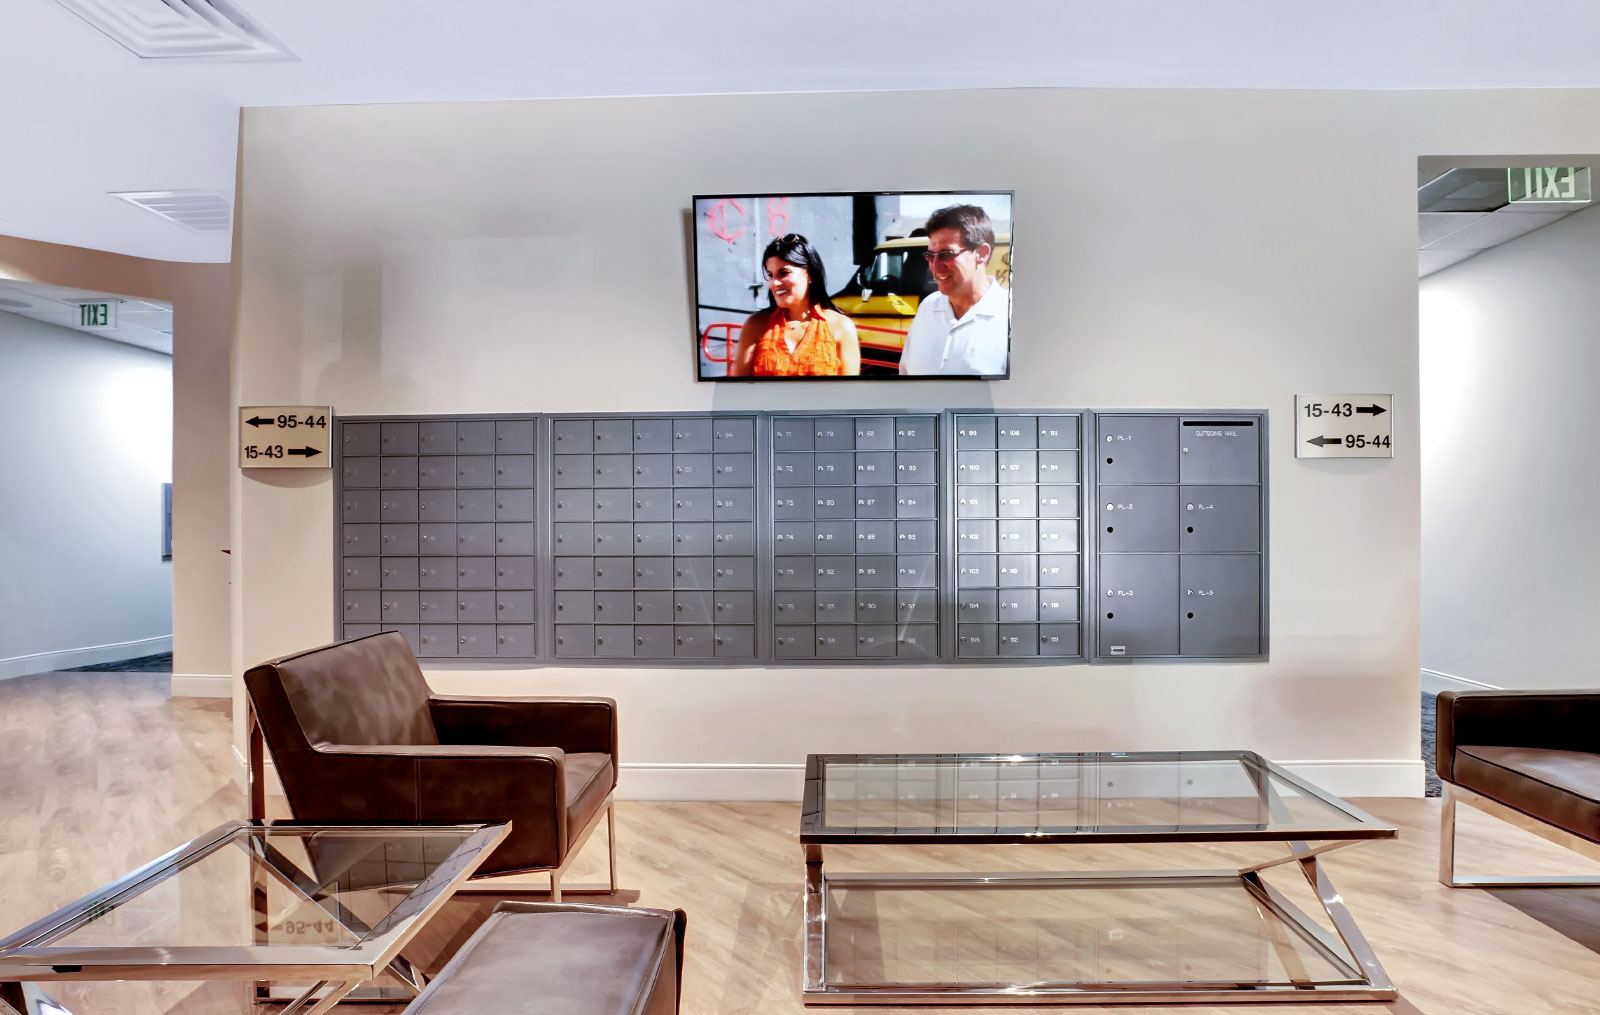 A wall of mailboxes with a flat-screen TV mounted above them, with cushioned chairs and glass coffee tables occupying the open space